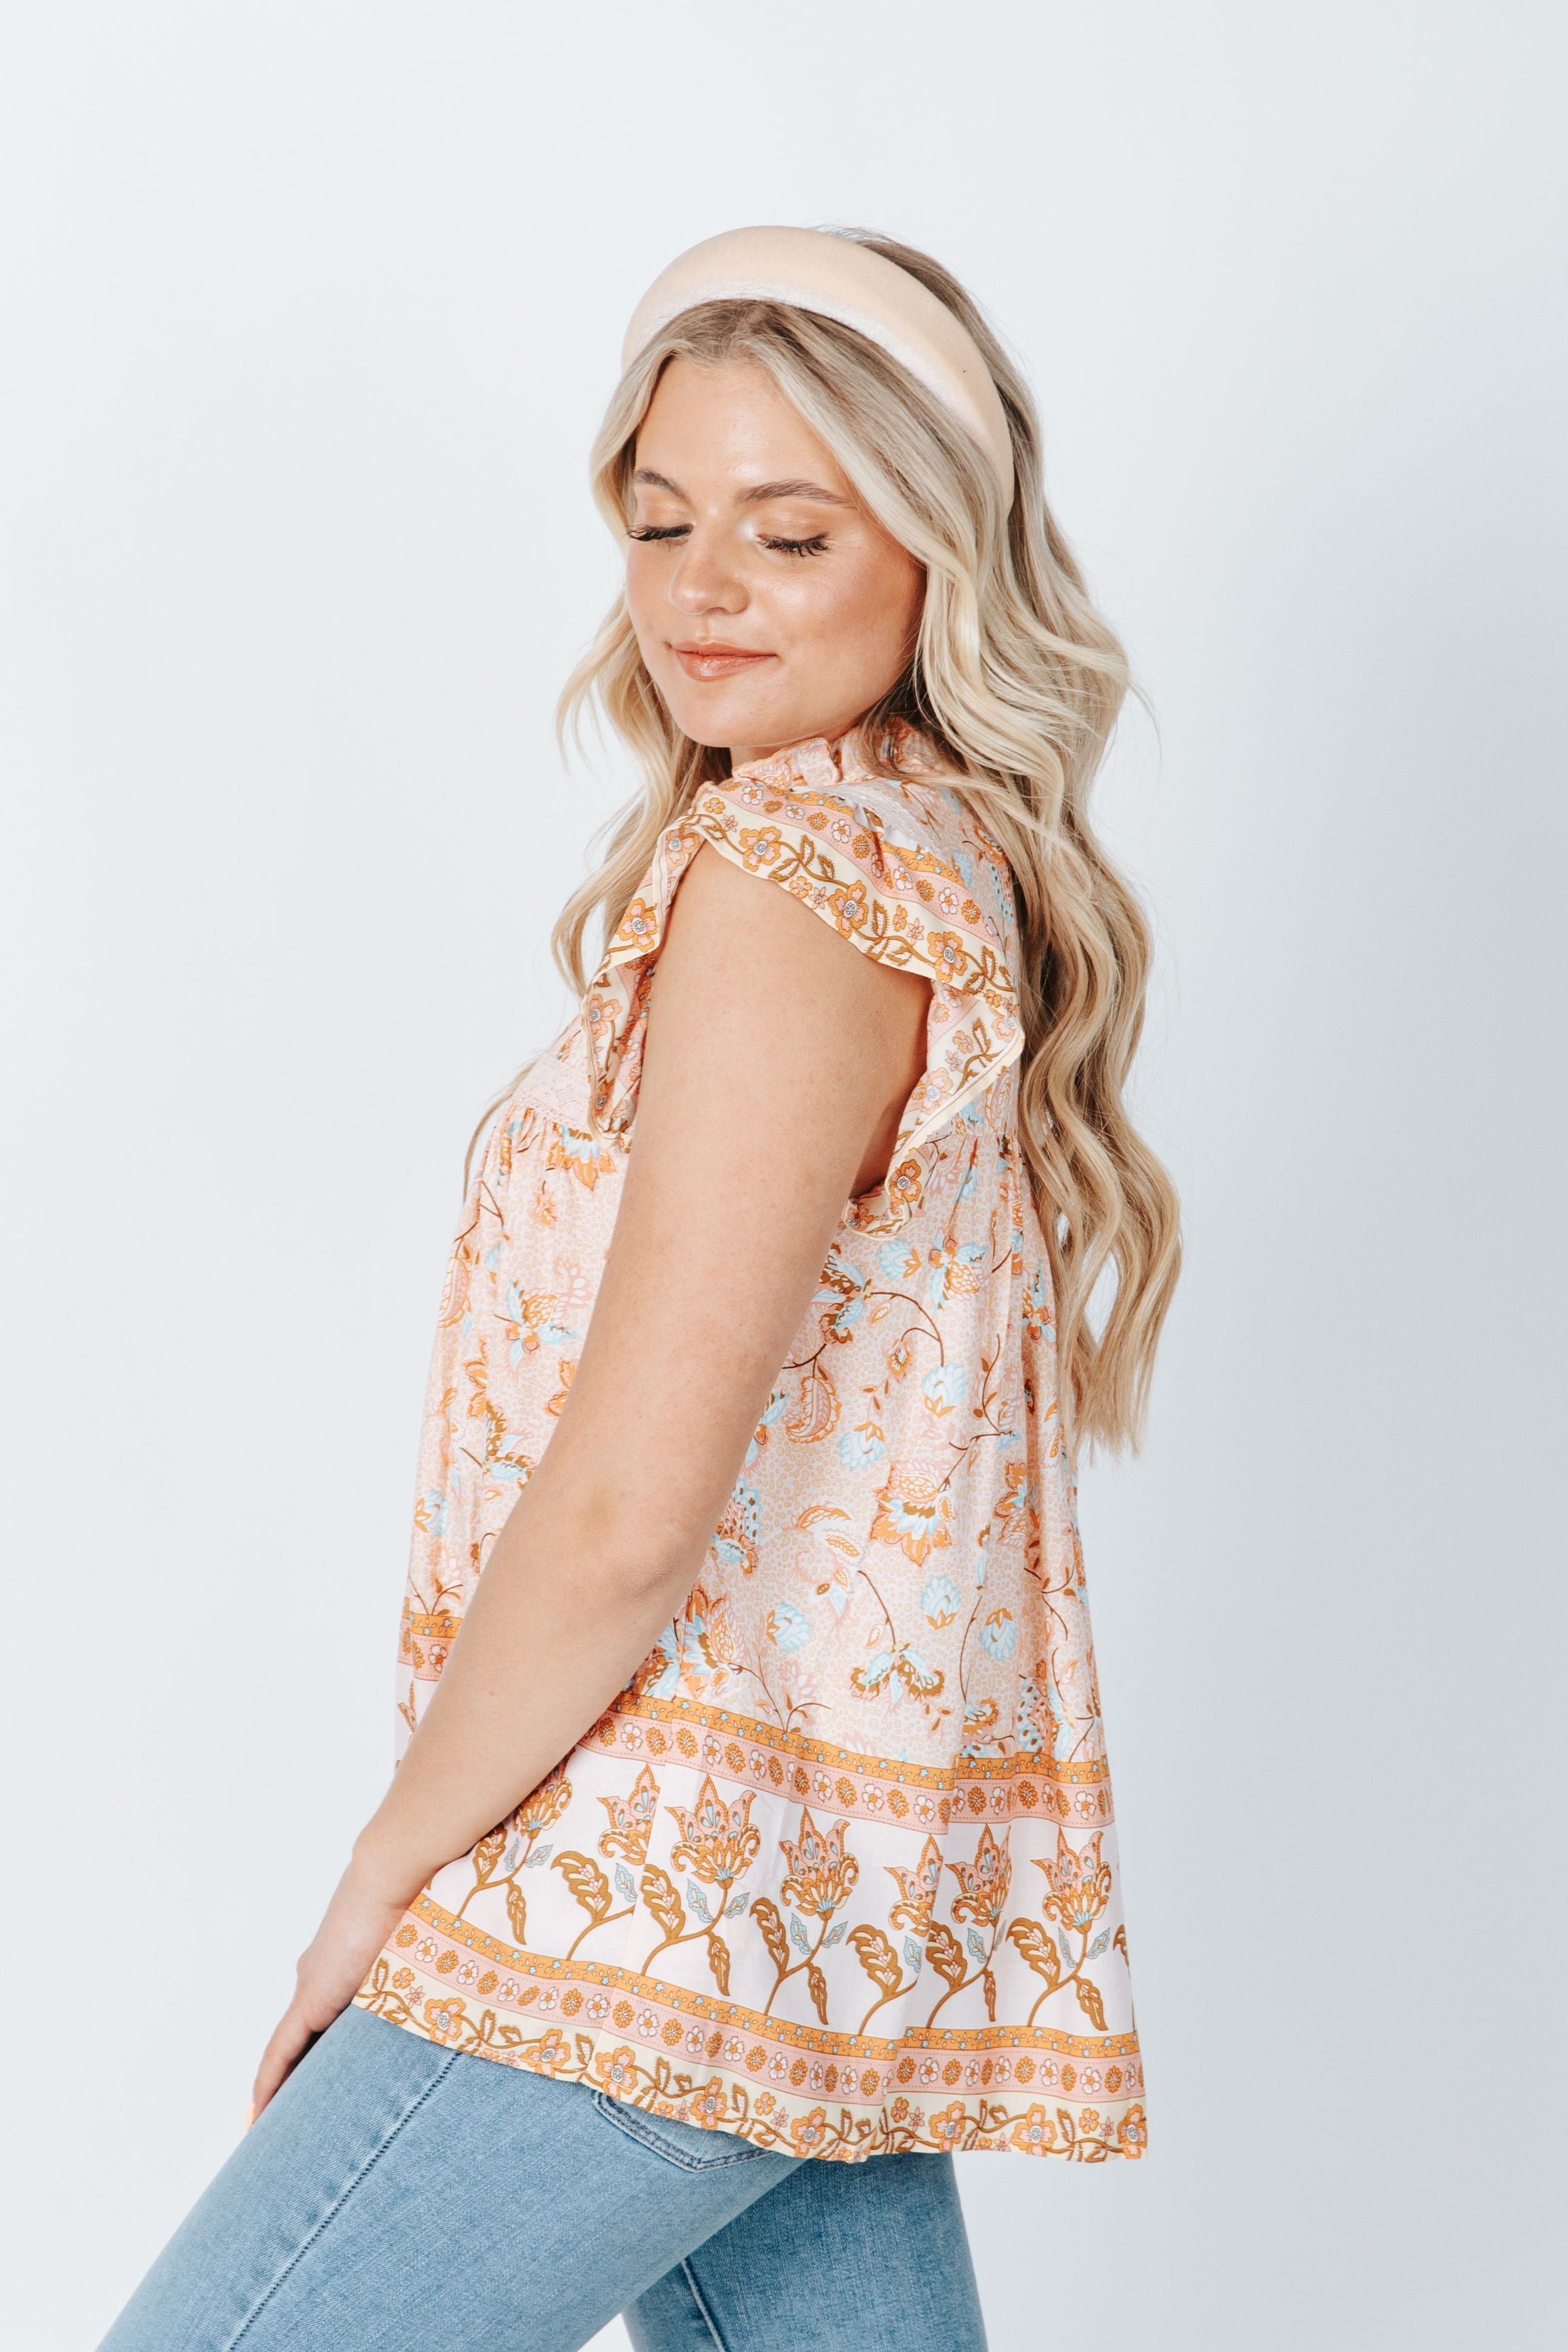 The Kersey Eyelet Lace Dress in Natural